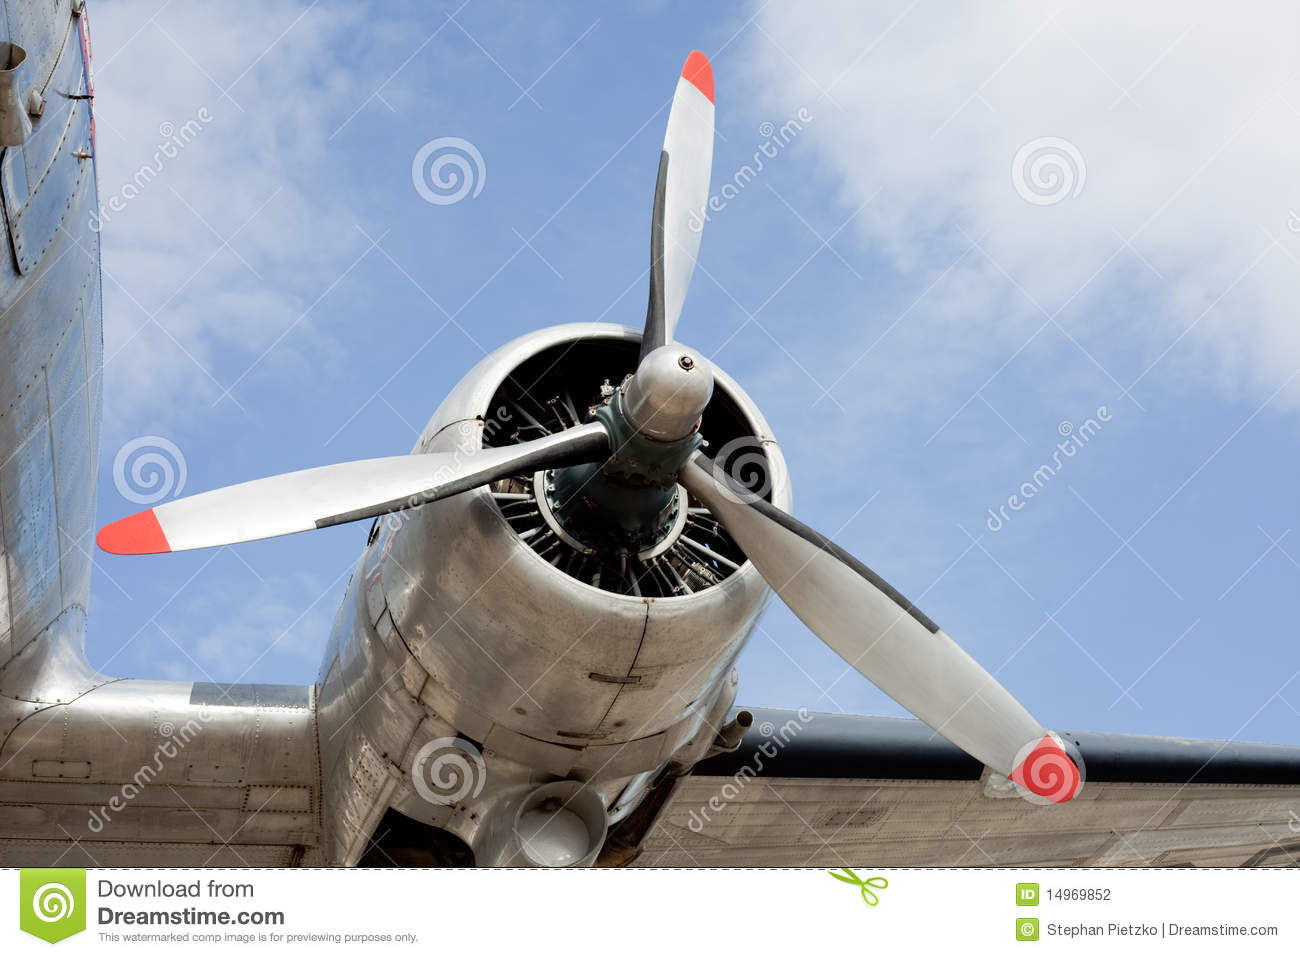 Download Propeller Engine Of Vintage Airplane DC 3 Stock Photo